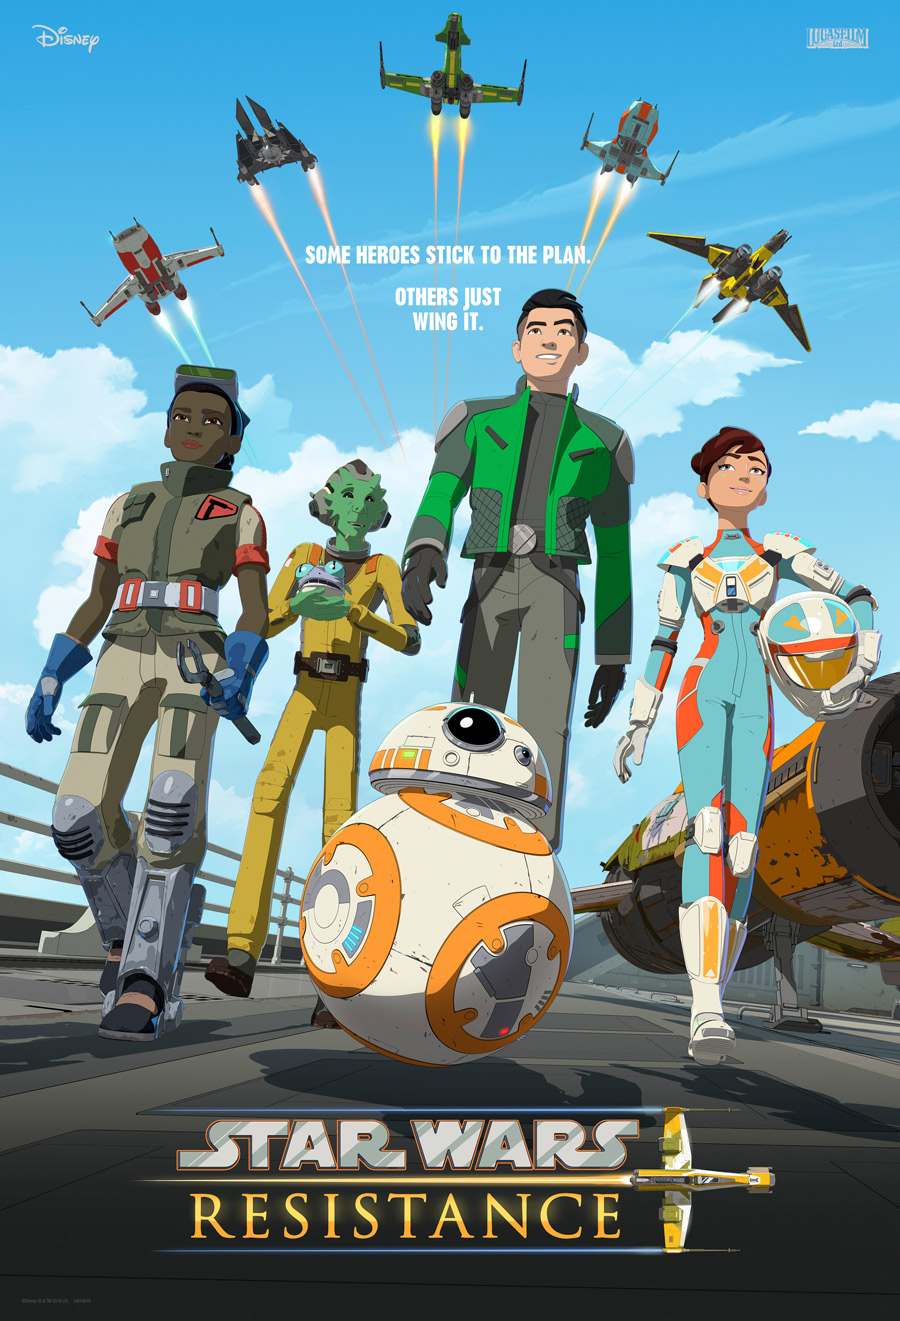 Meet Team Fireball in a New Star Wars Resistance Clip